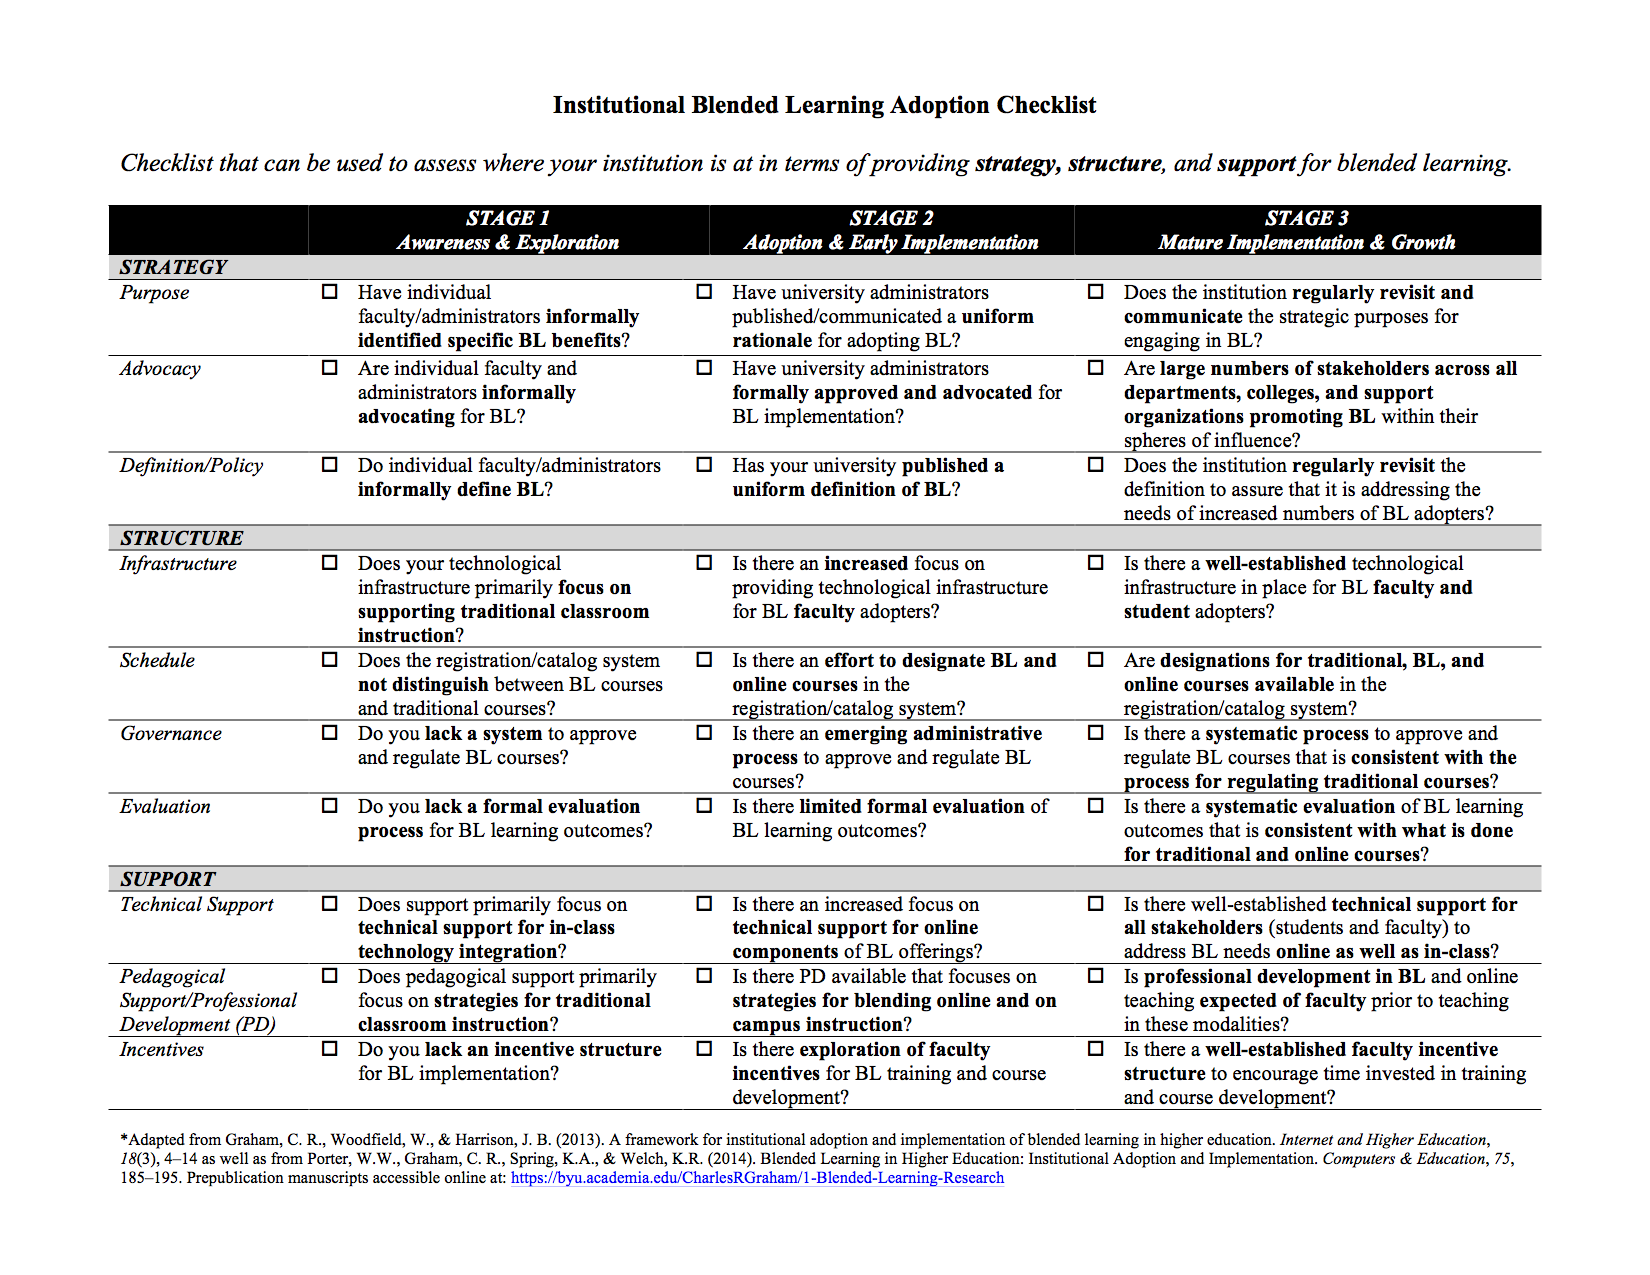 Blended Learning Institutional Adoption Checklist